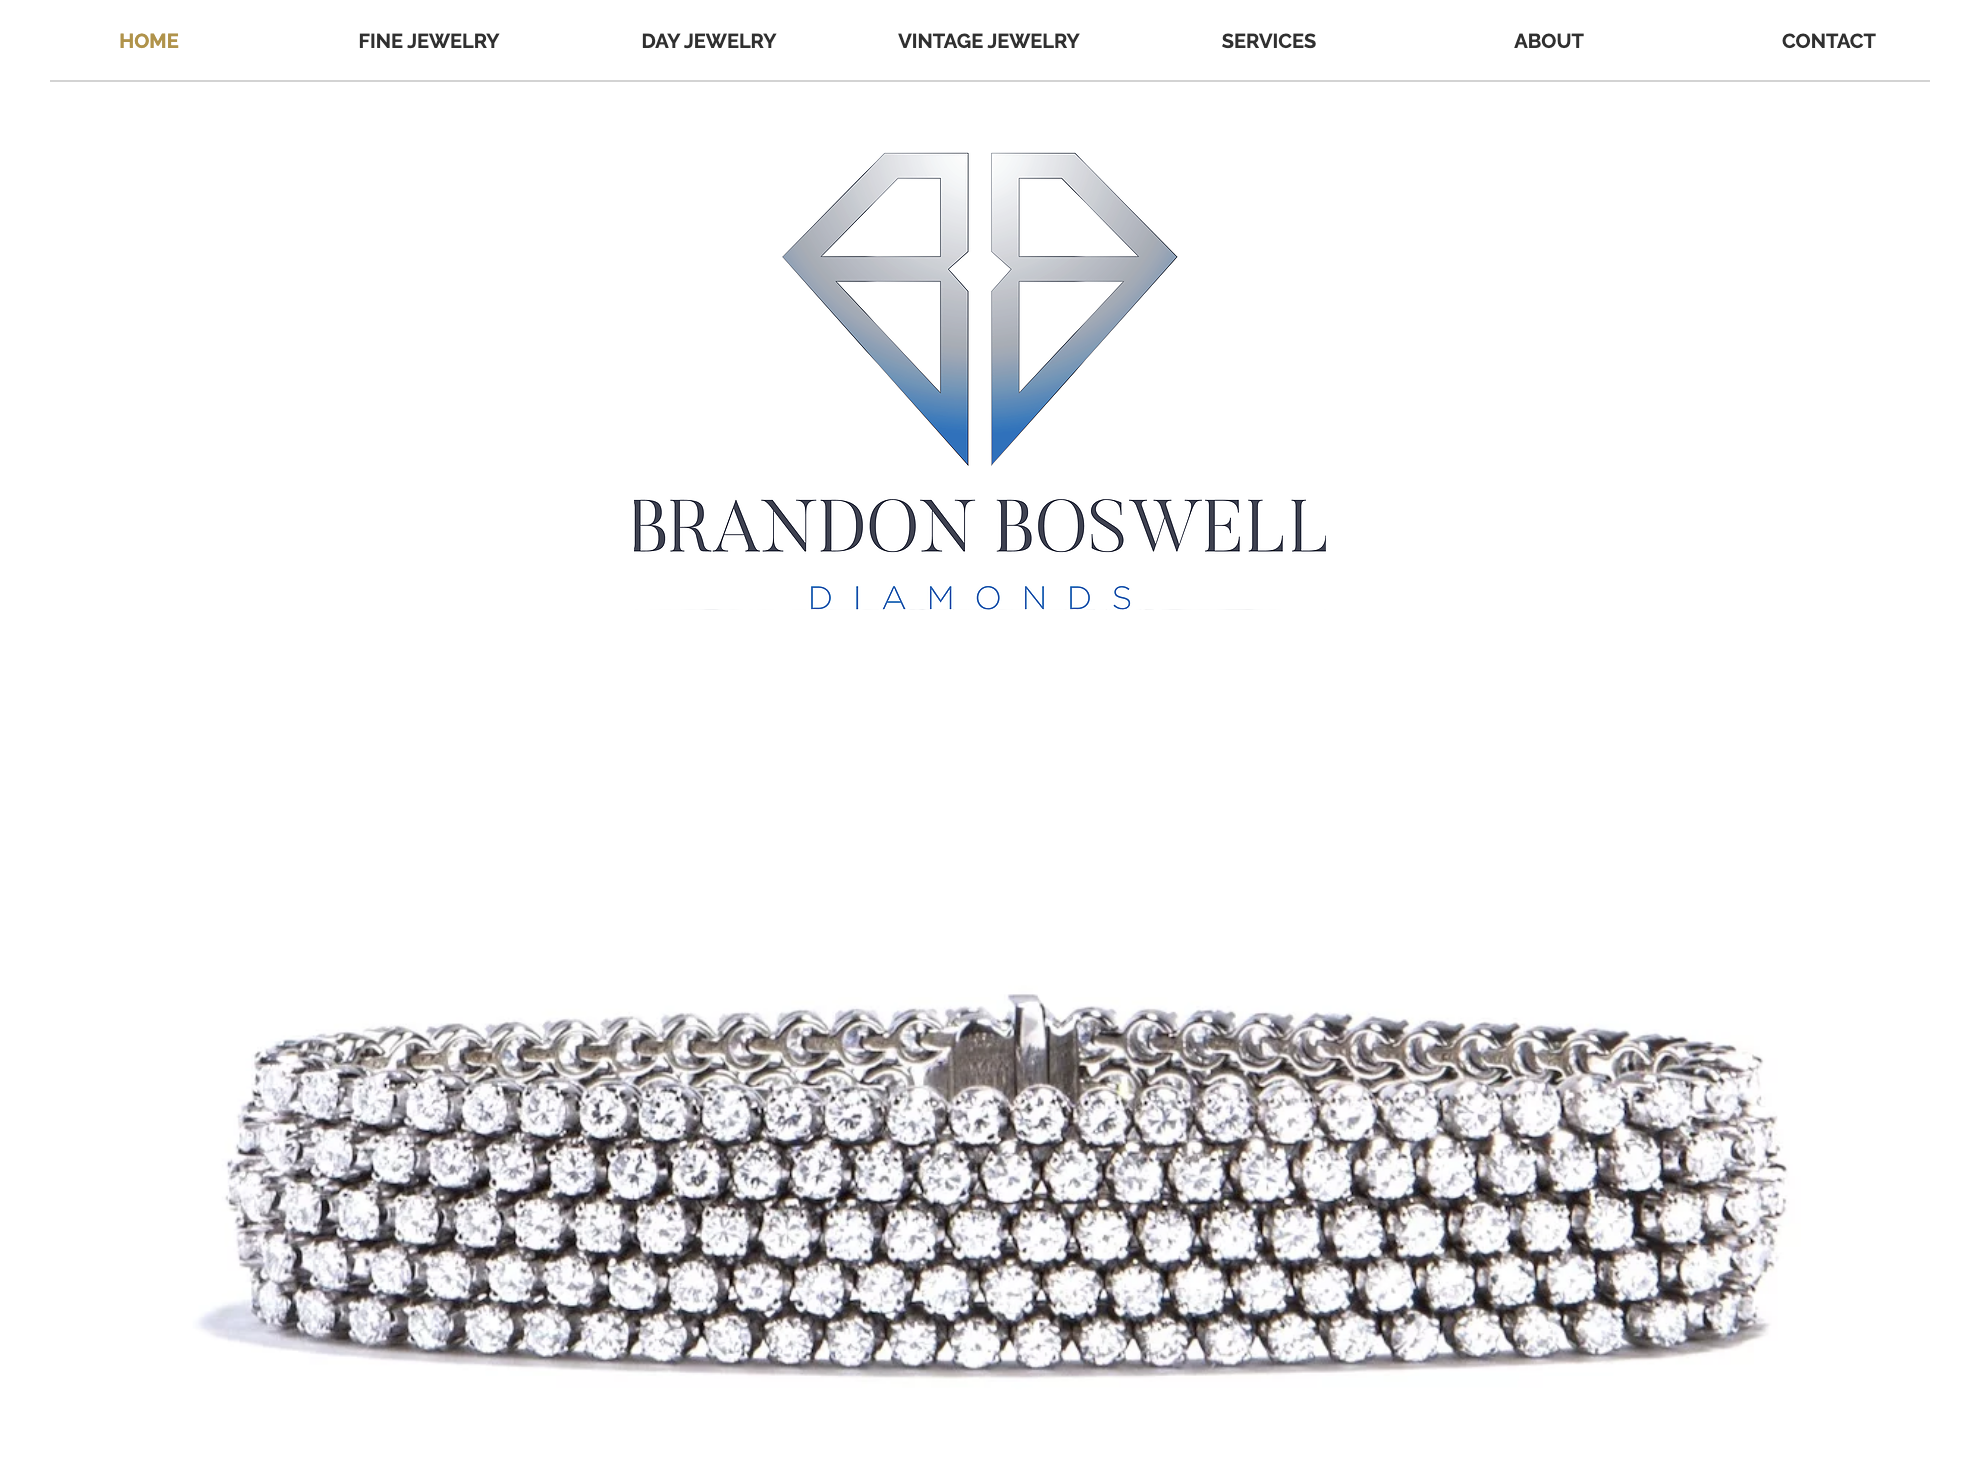 Brandon Boswell Diamonds